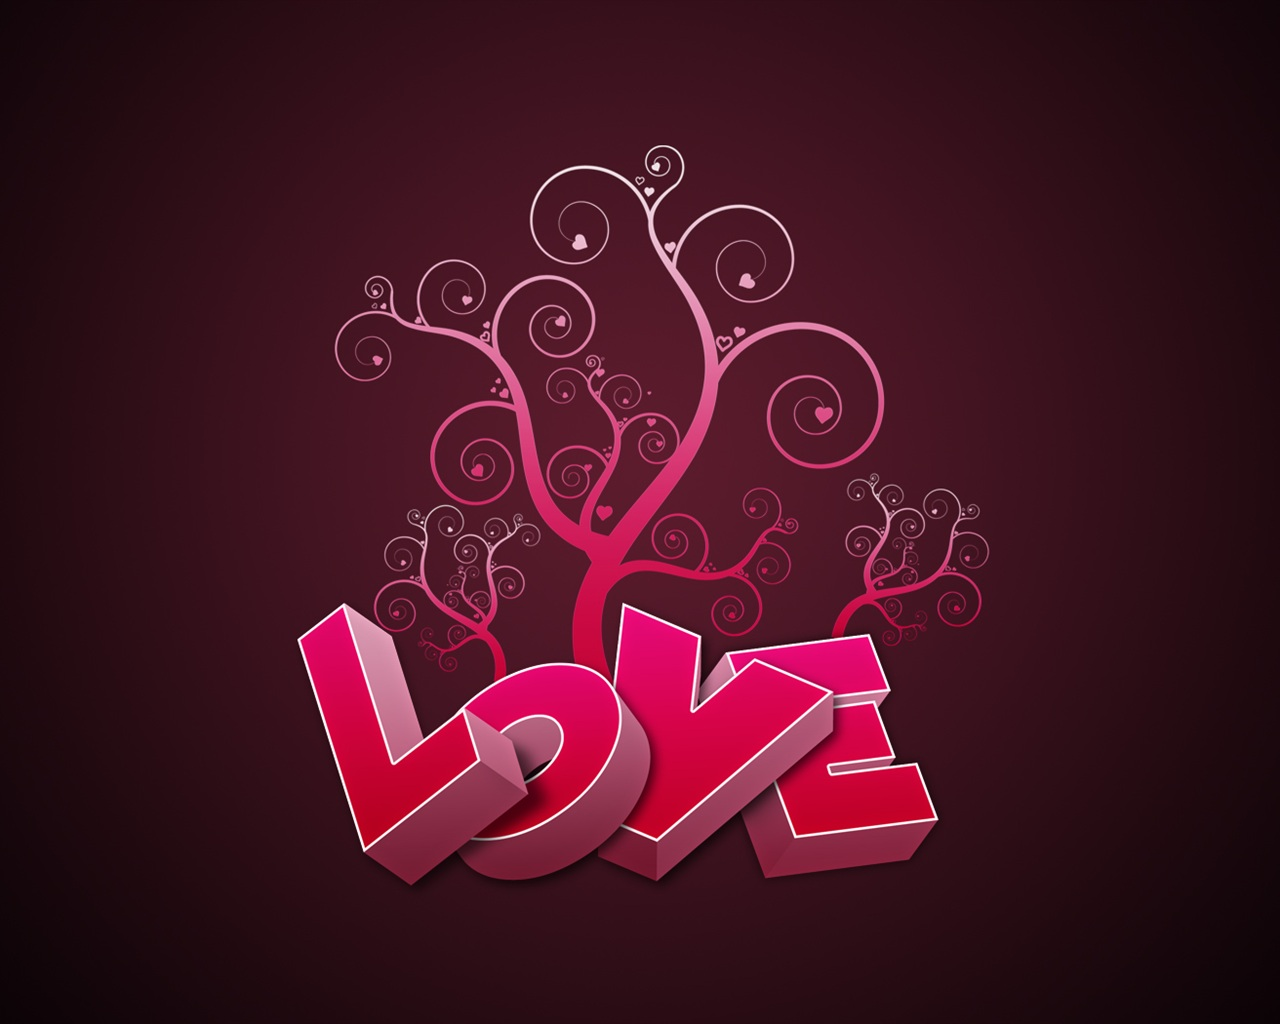 Love Wallpaper Pick : Download Wallpaper 1280x1024 3D pink Love HD Background